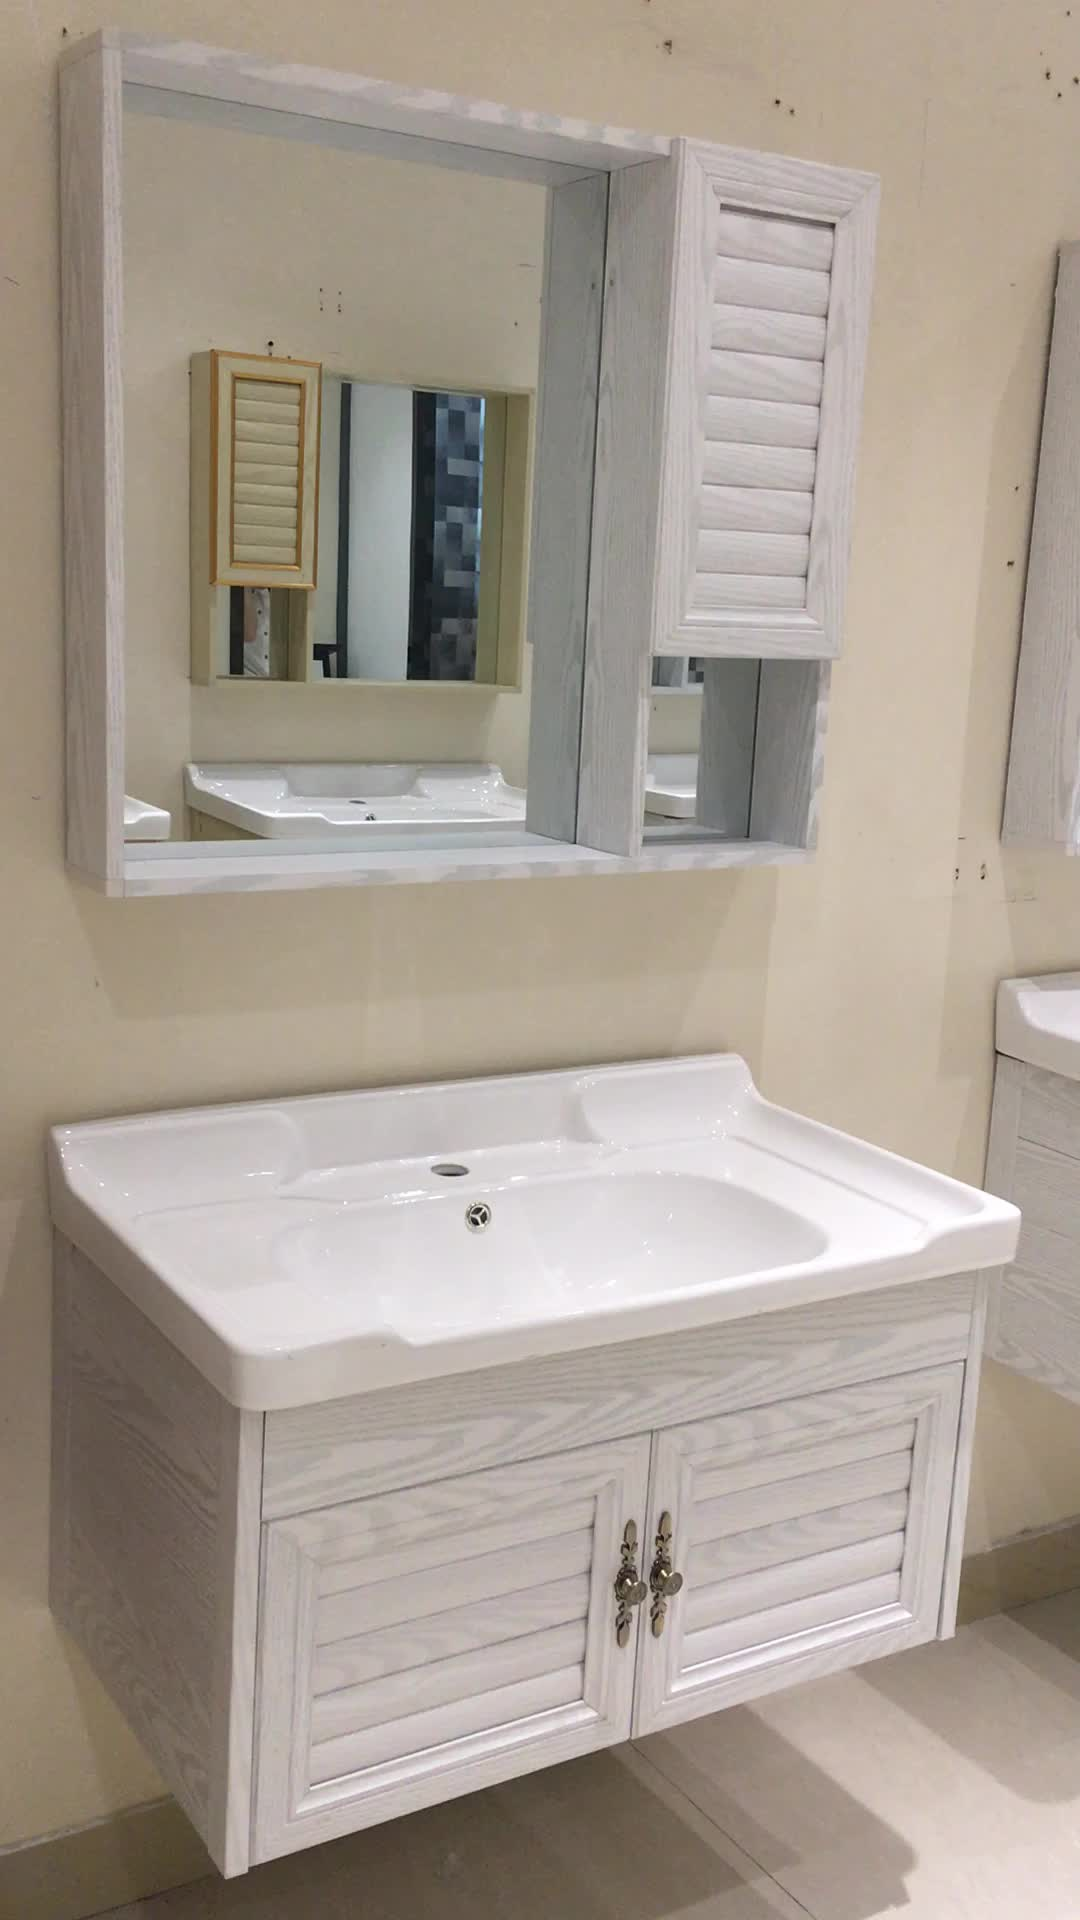 Used Bathroom Vanity Cabinets White Mdf Bathroom Cabinet: Used Aluminum Bath Bathroom Vanities Cabinets For Sale